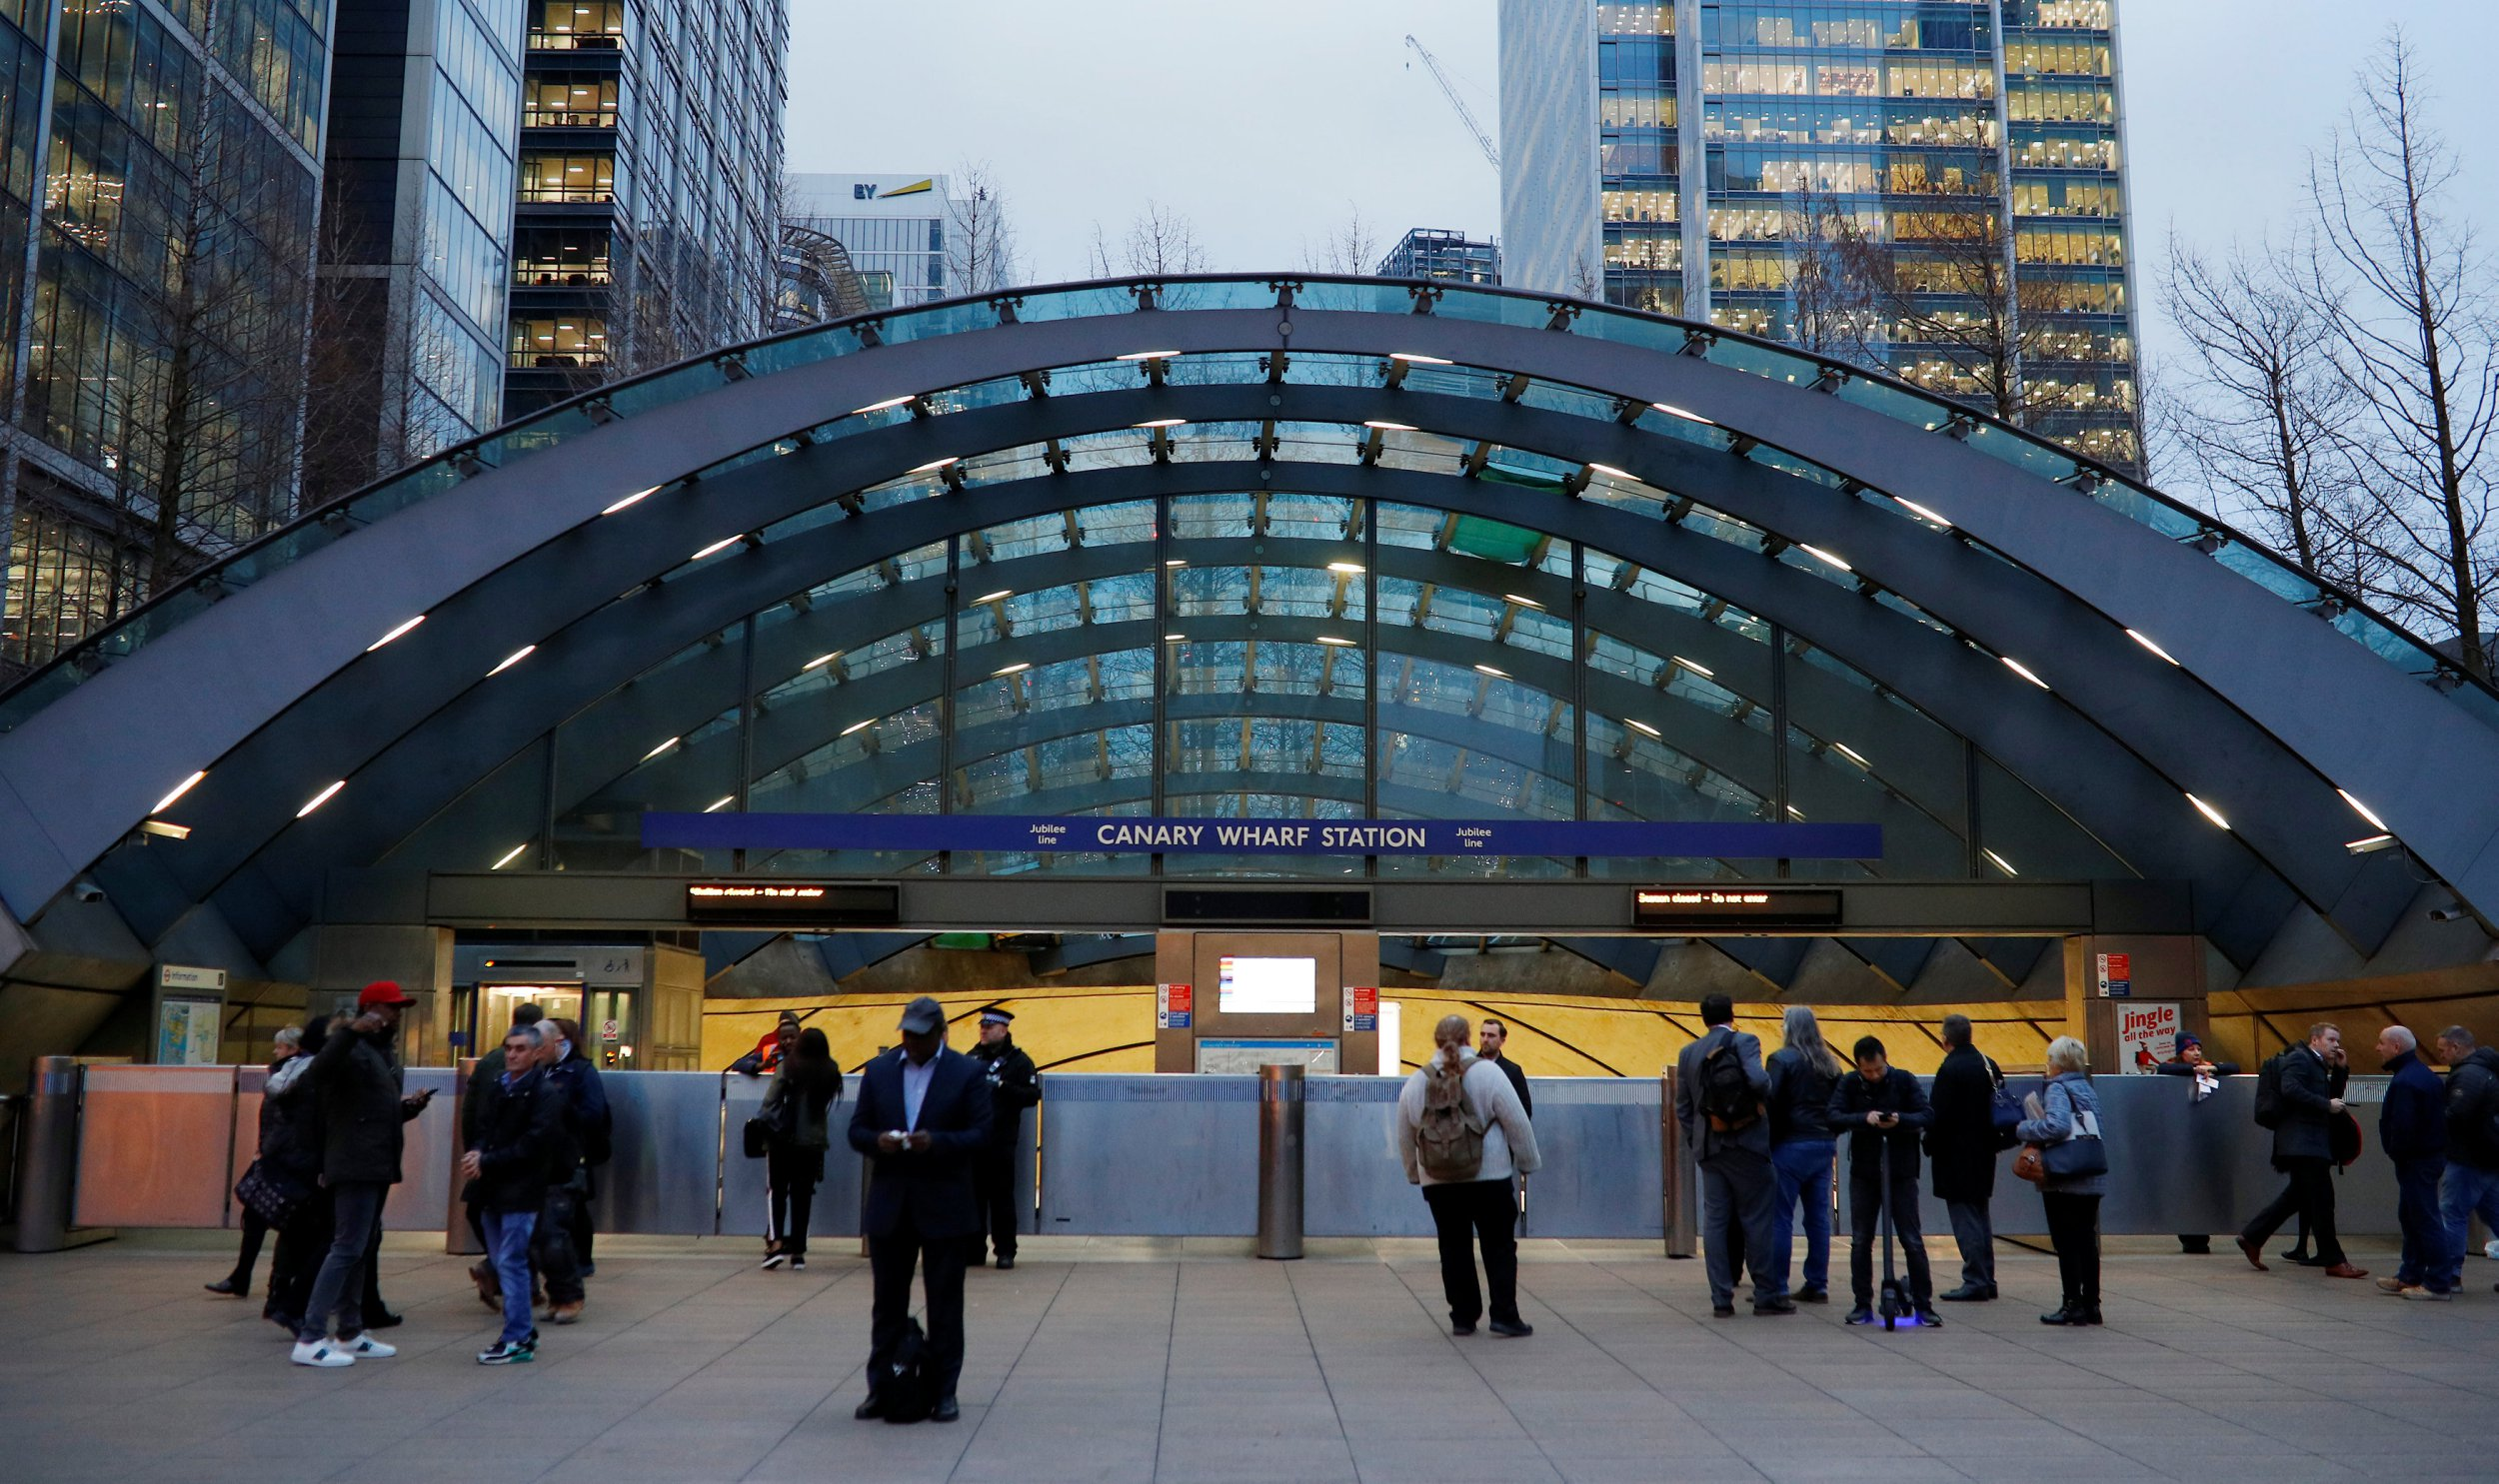 Commuters are seen outside a closed Canary Wharf tube station following an incident at the station in London, Britain, January 7, 2019. REUTERS/Phil Noble